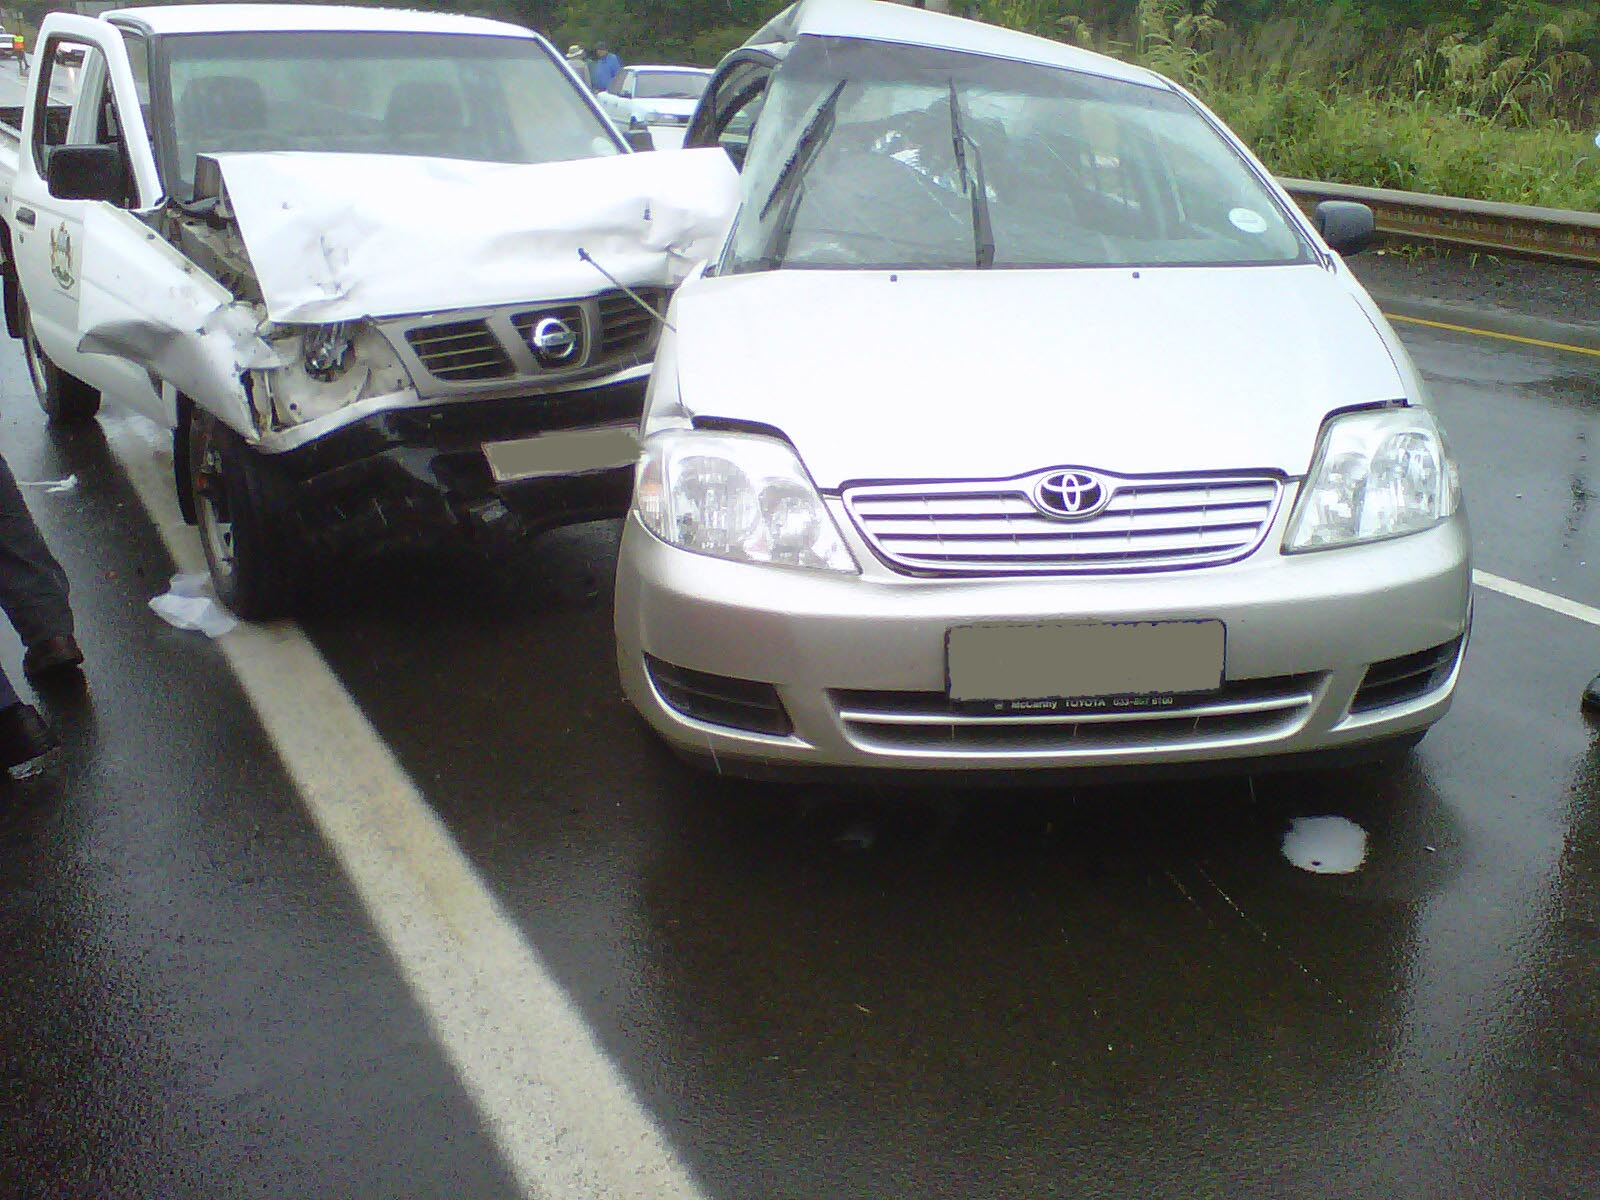 Getting great auto insurance will help you get through days like this ... photo by CC user ER24 EMS (Pty) Ltd. on Flickr